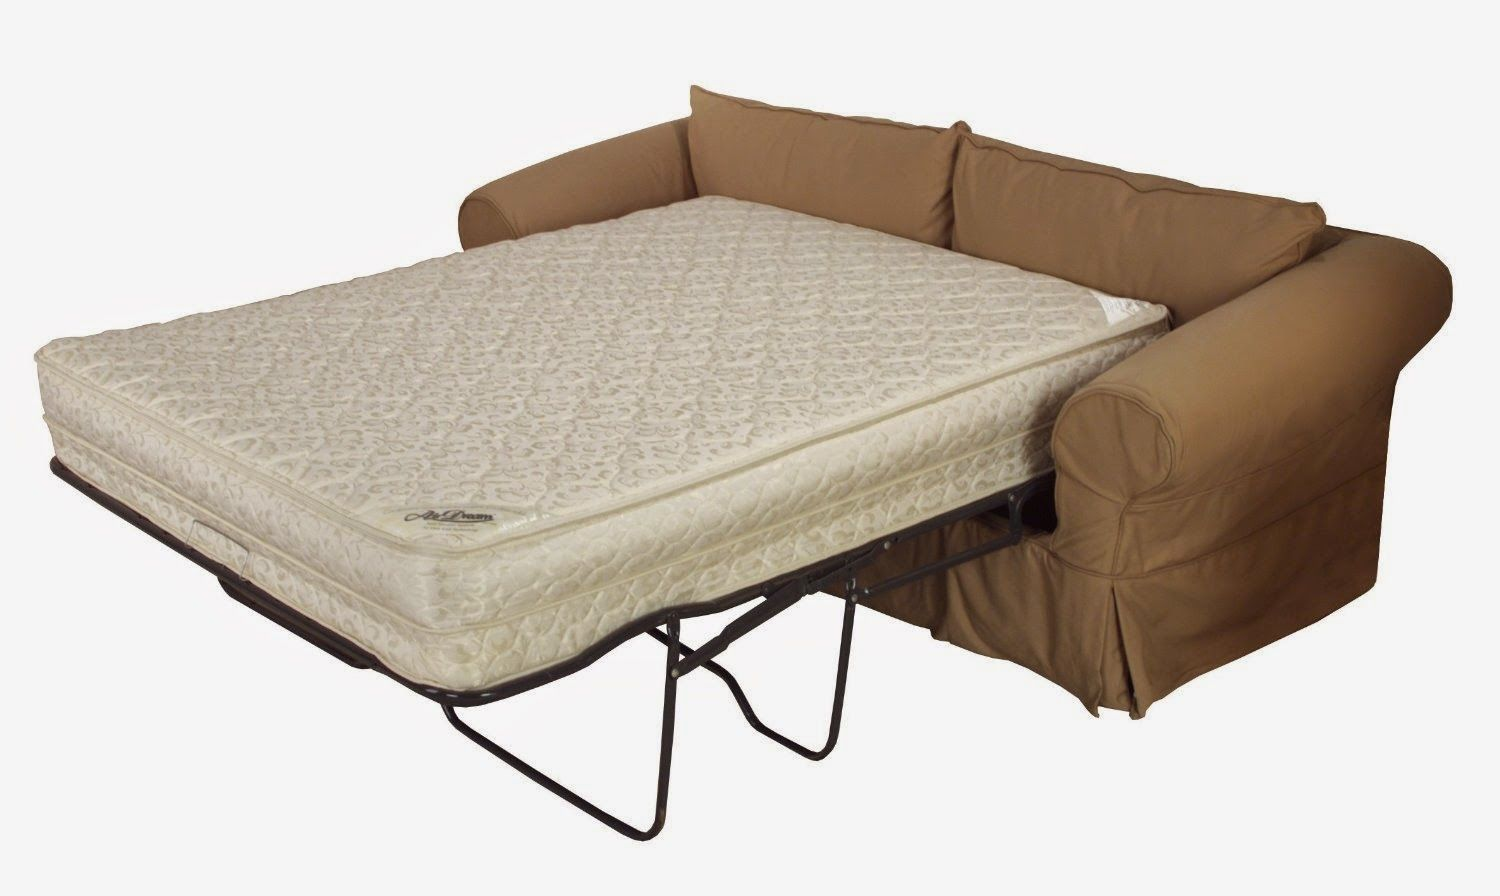 best of sofa bed mattress replacement inspiration-Modern sofa Bed Mattress Replacement Portrait